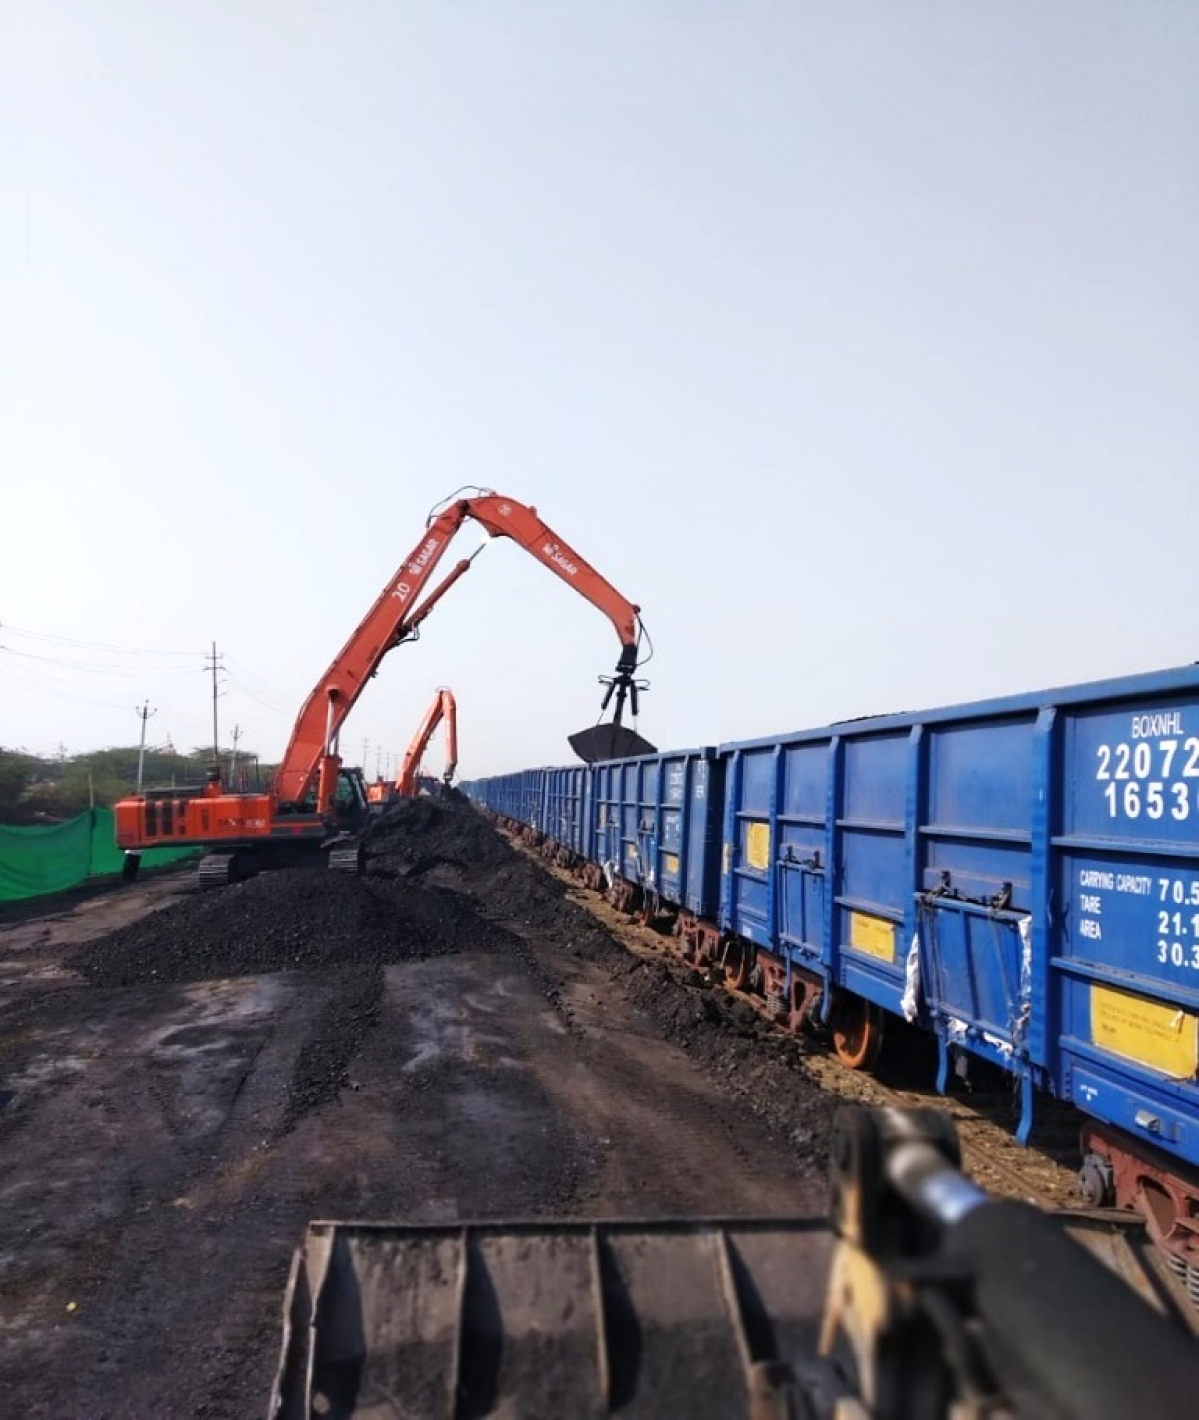 Western Railway transports 1335 tonnes of gram pulse from Rajkot to Kerala for the first time